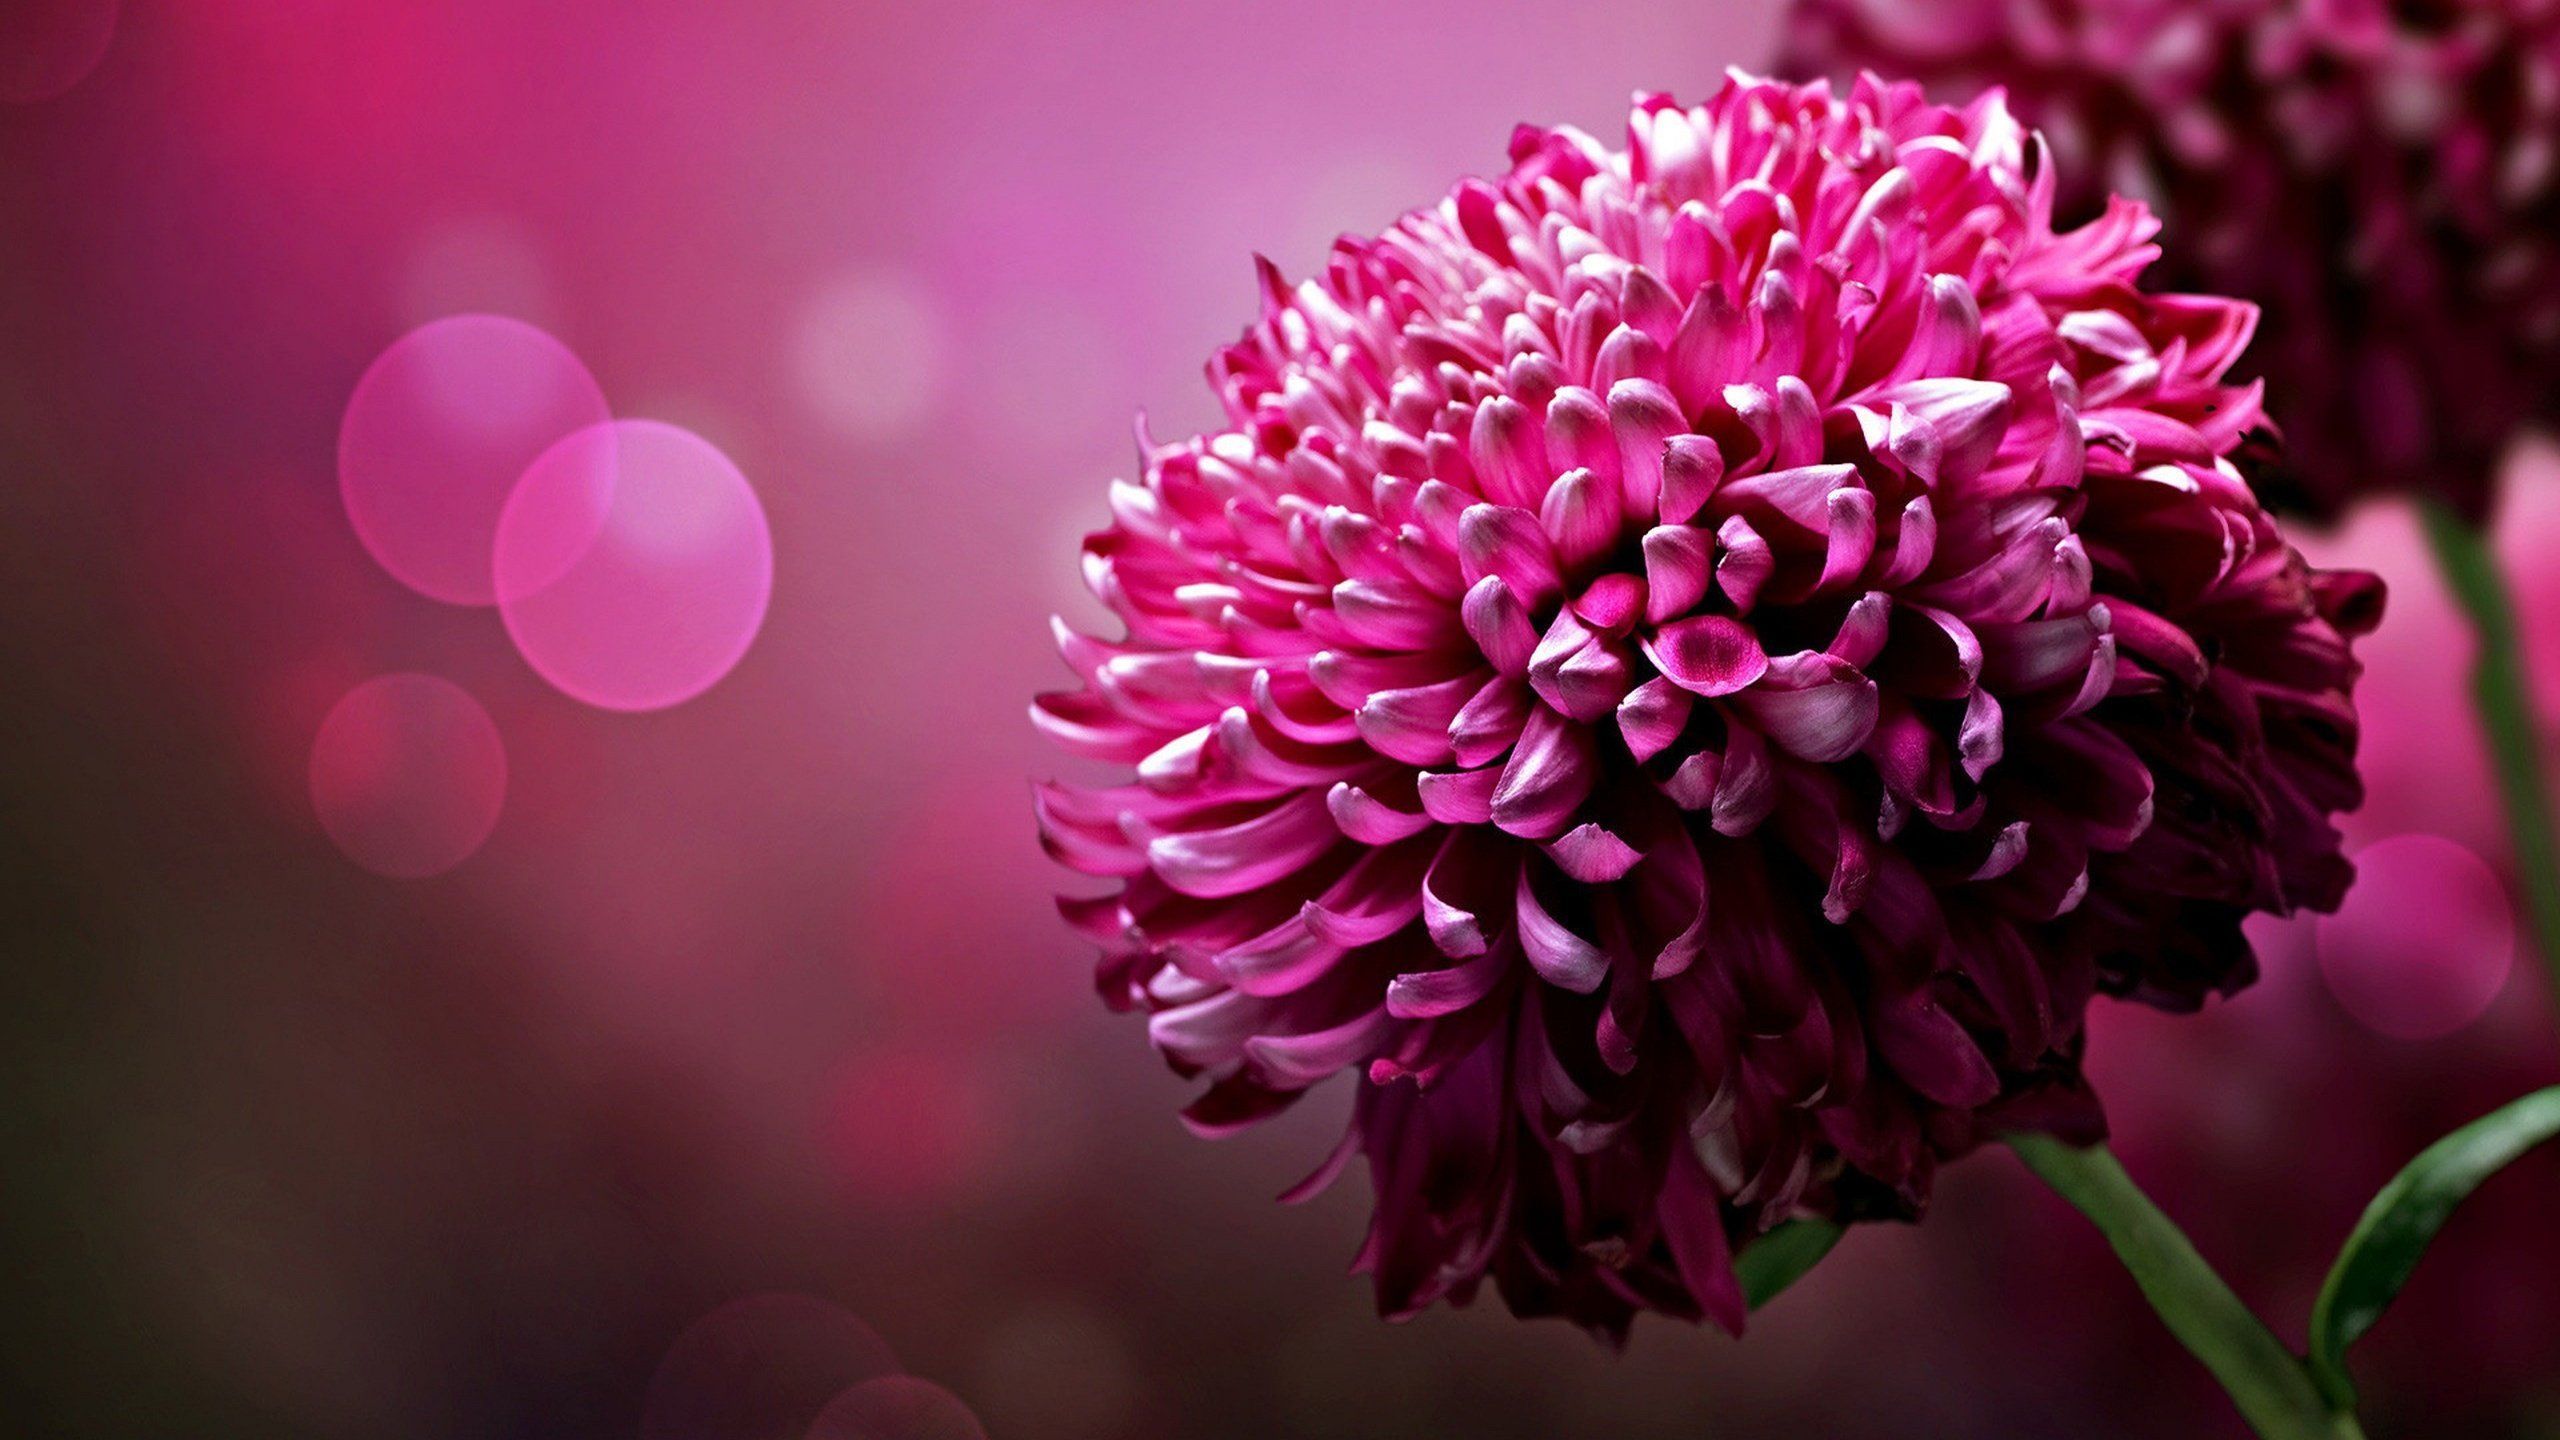 Beautiful flowers wallpapers group wallpapers of beautiful